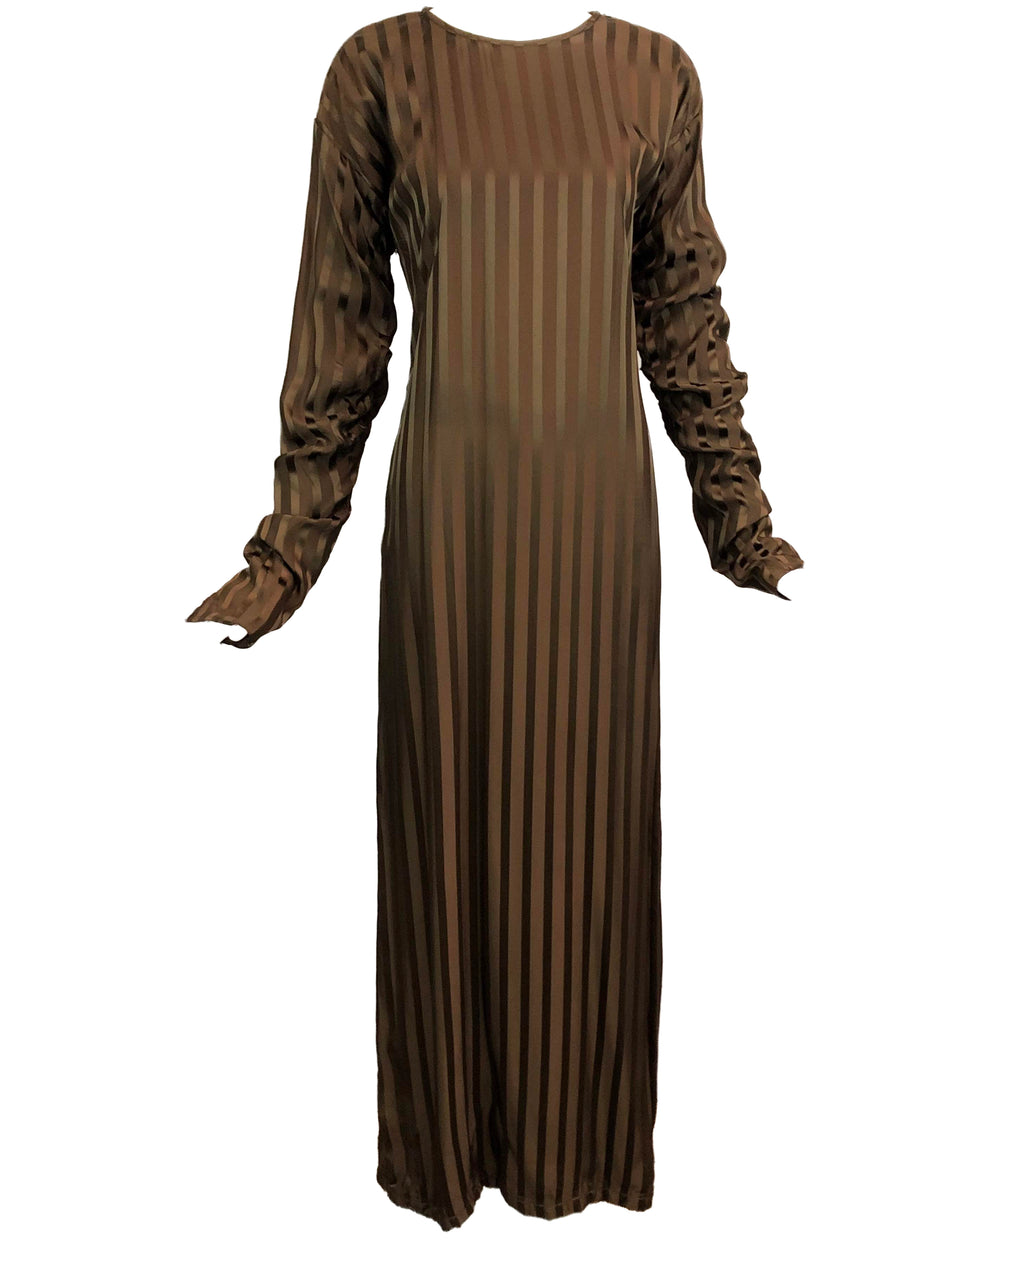 Jean Paul Gaultier 2000s Brown Silk Striped Maxi 1 of 5